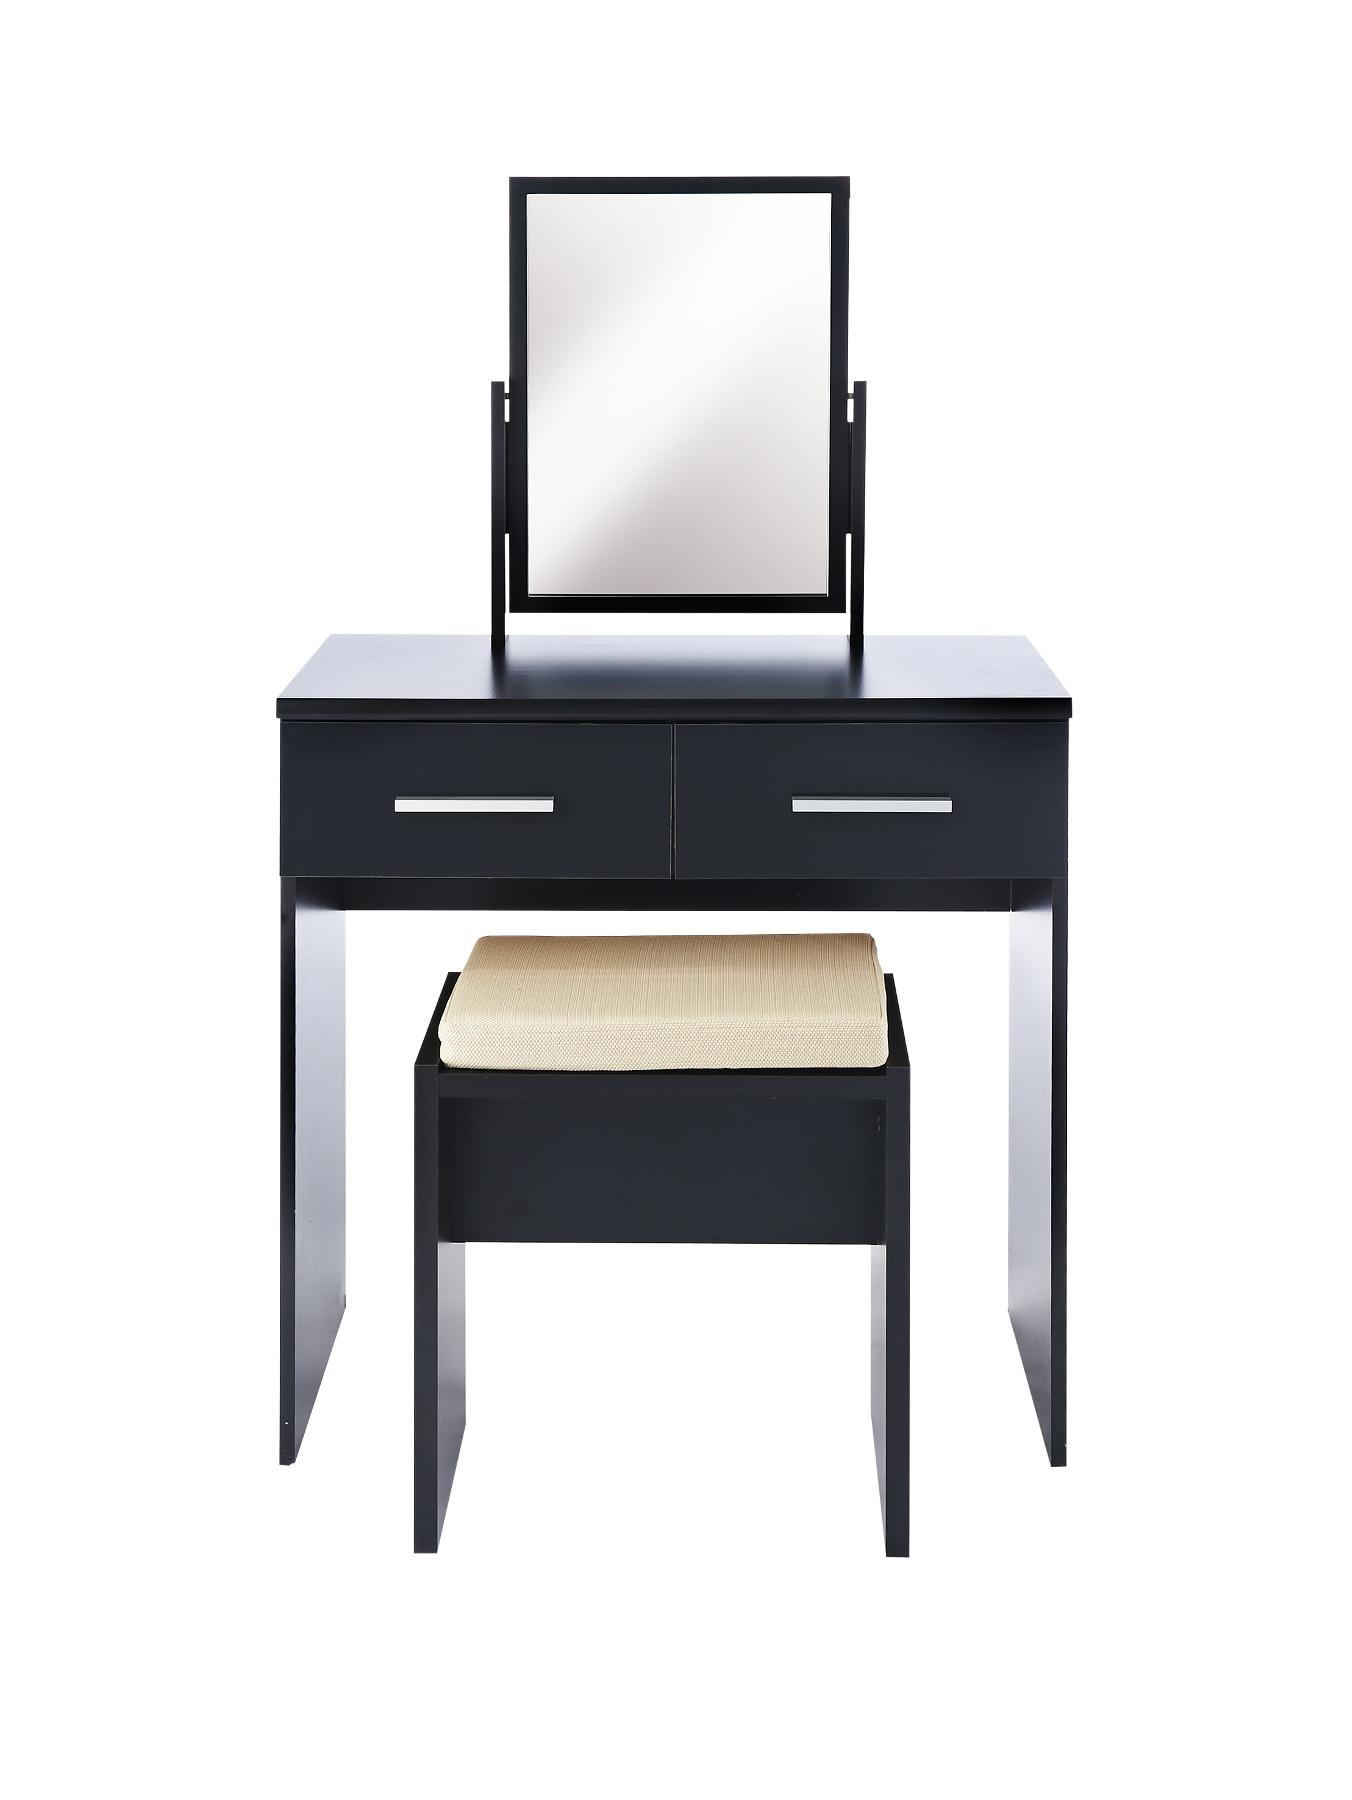 Prague High Gloss Dressing Table, Stool and Mirror Set, Black,White